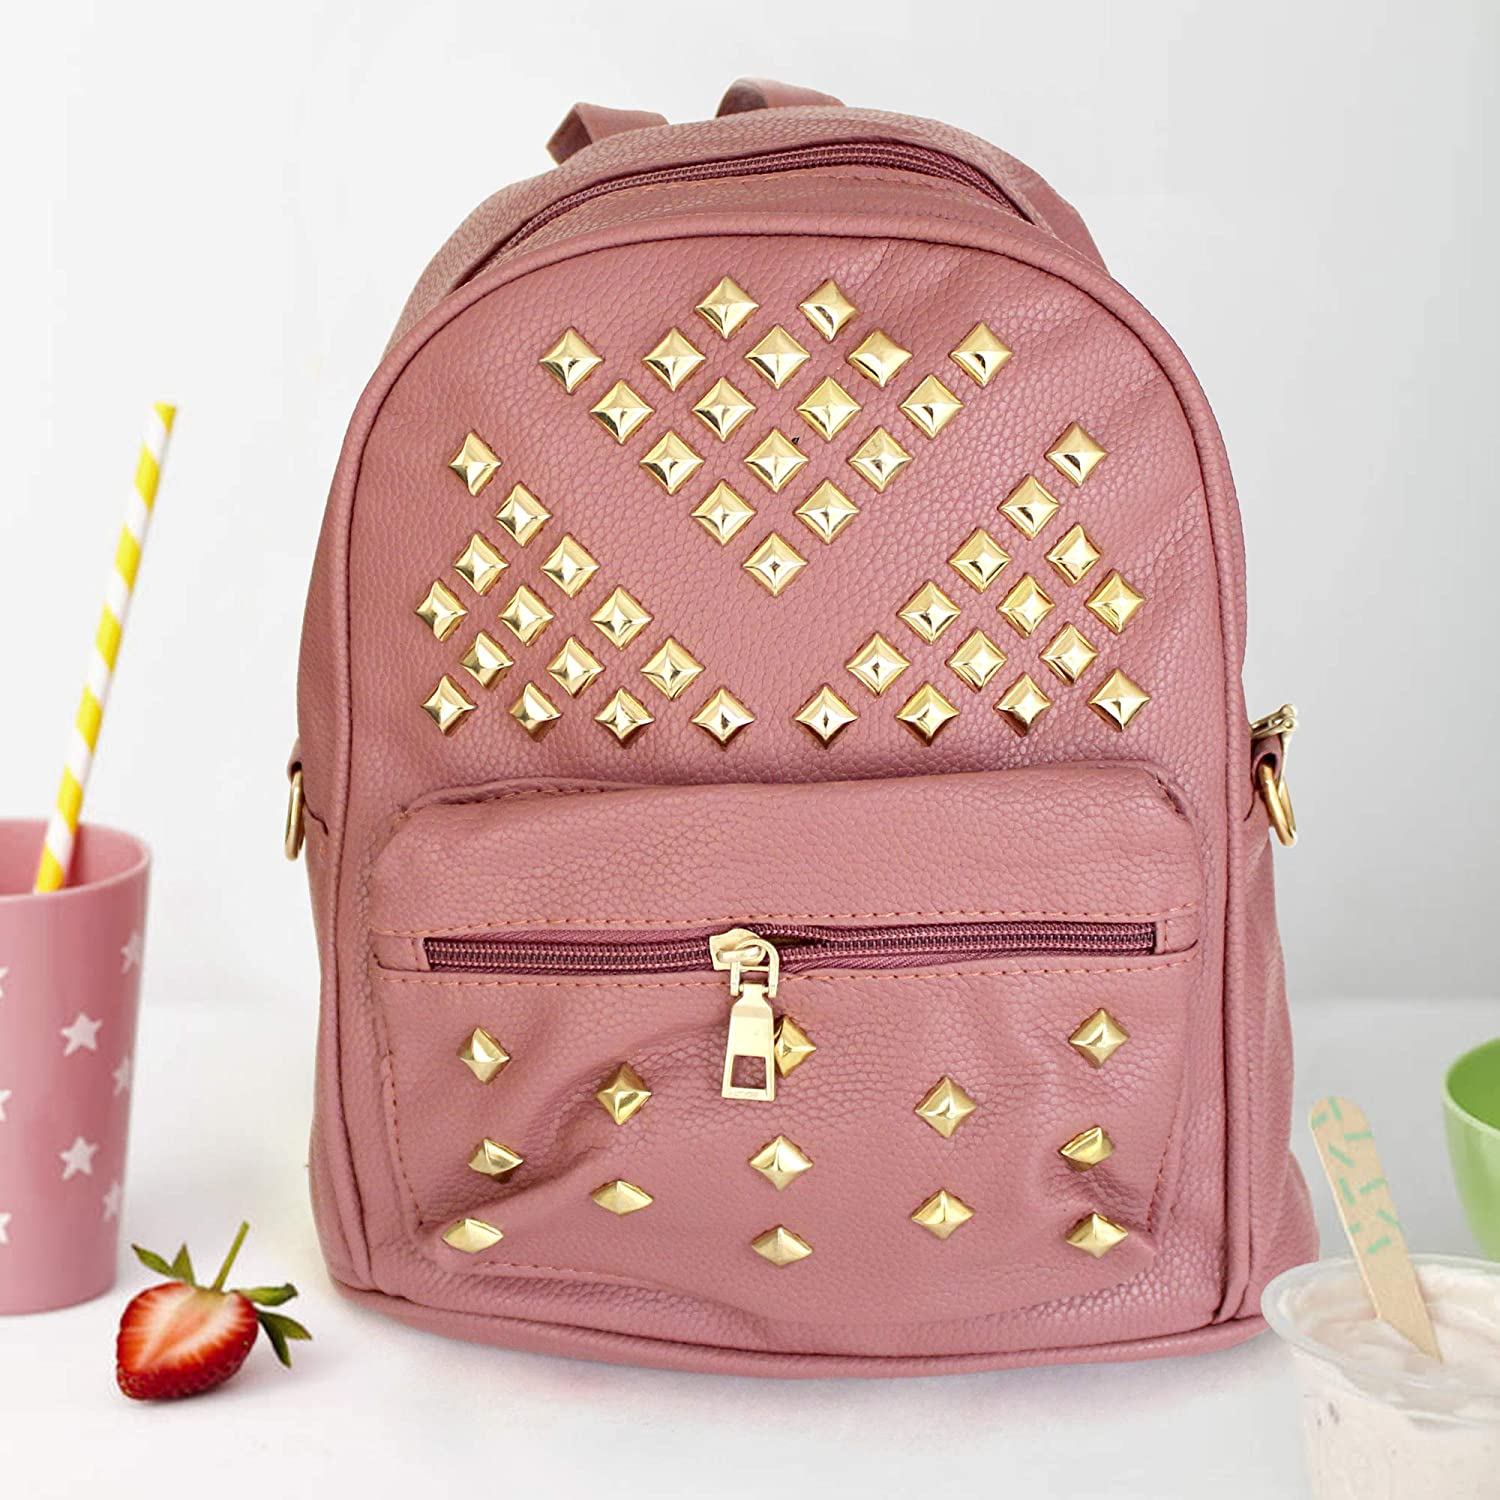 TIED RIBBONS Faux Leather Trendy Backpack for Coaching College School  Casual Bag Daypack for Girls   Women(Aztec Tribal Print eb6c270722721